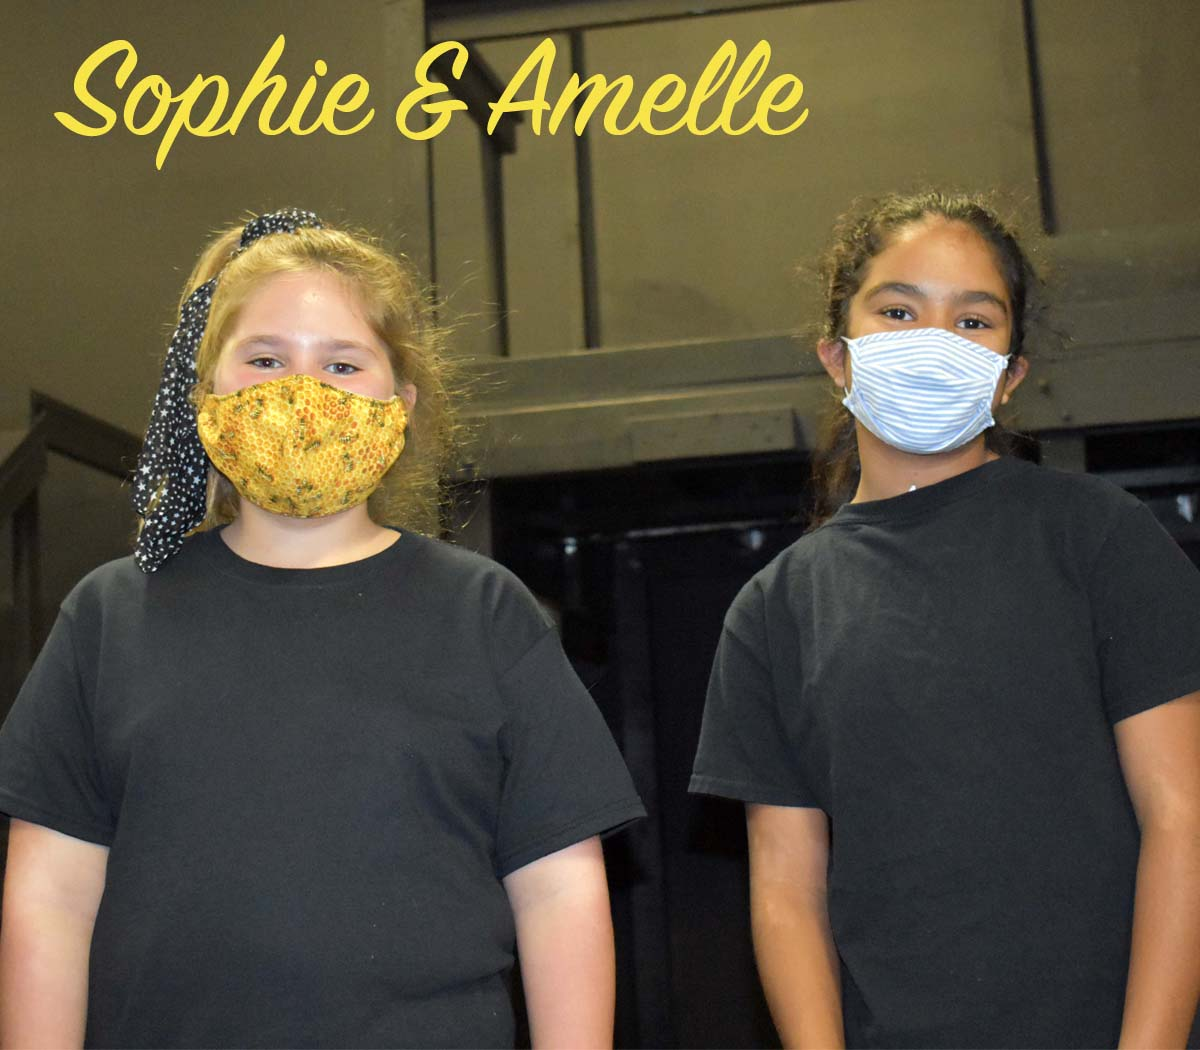 Sophie and Amelle